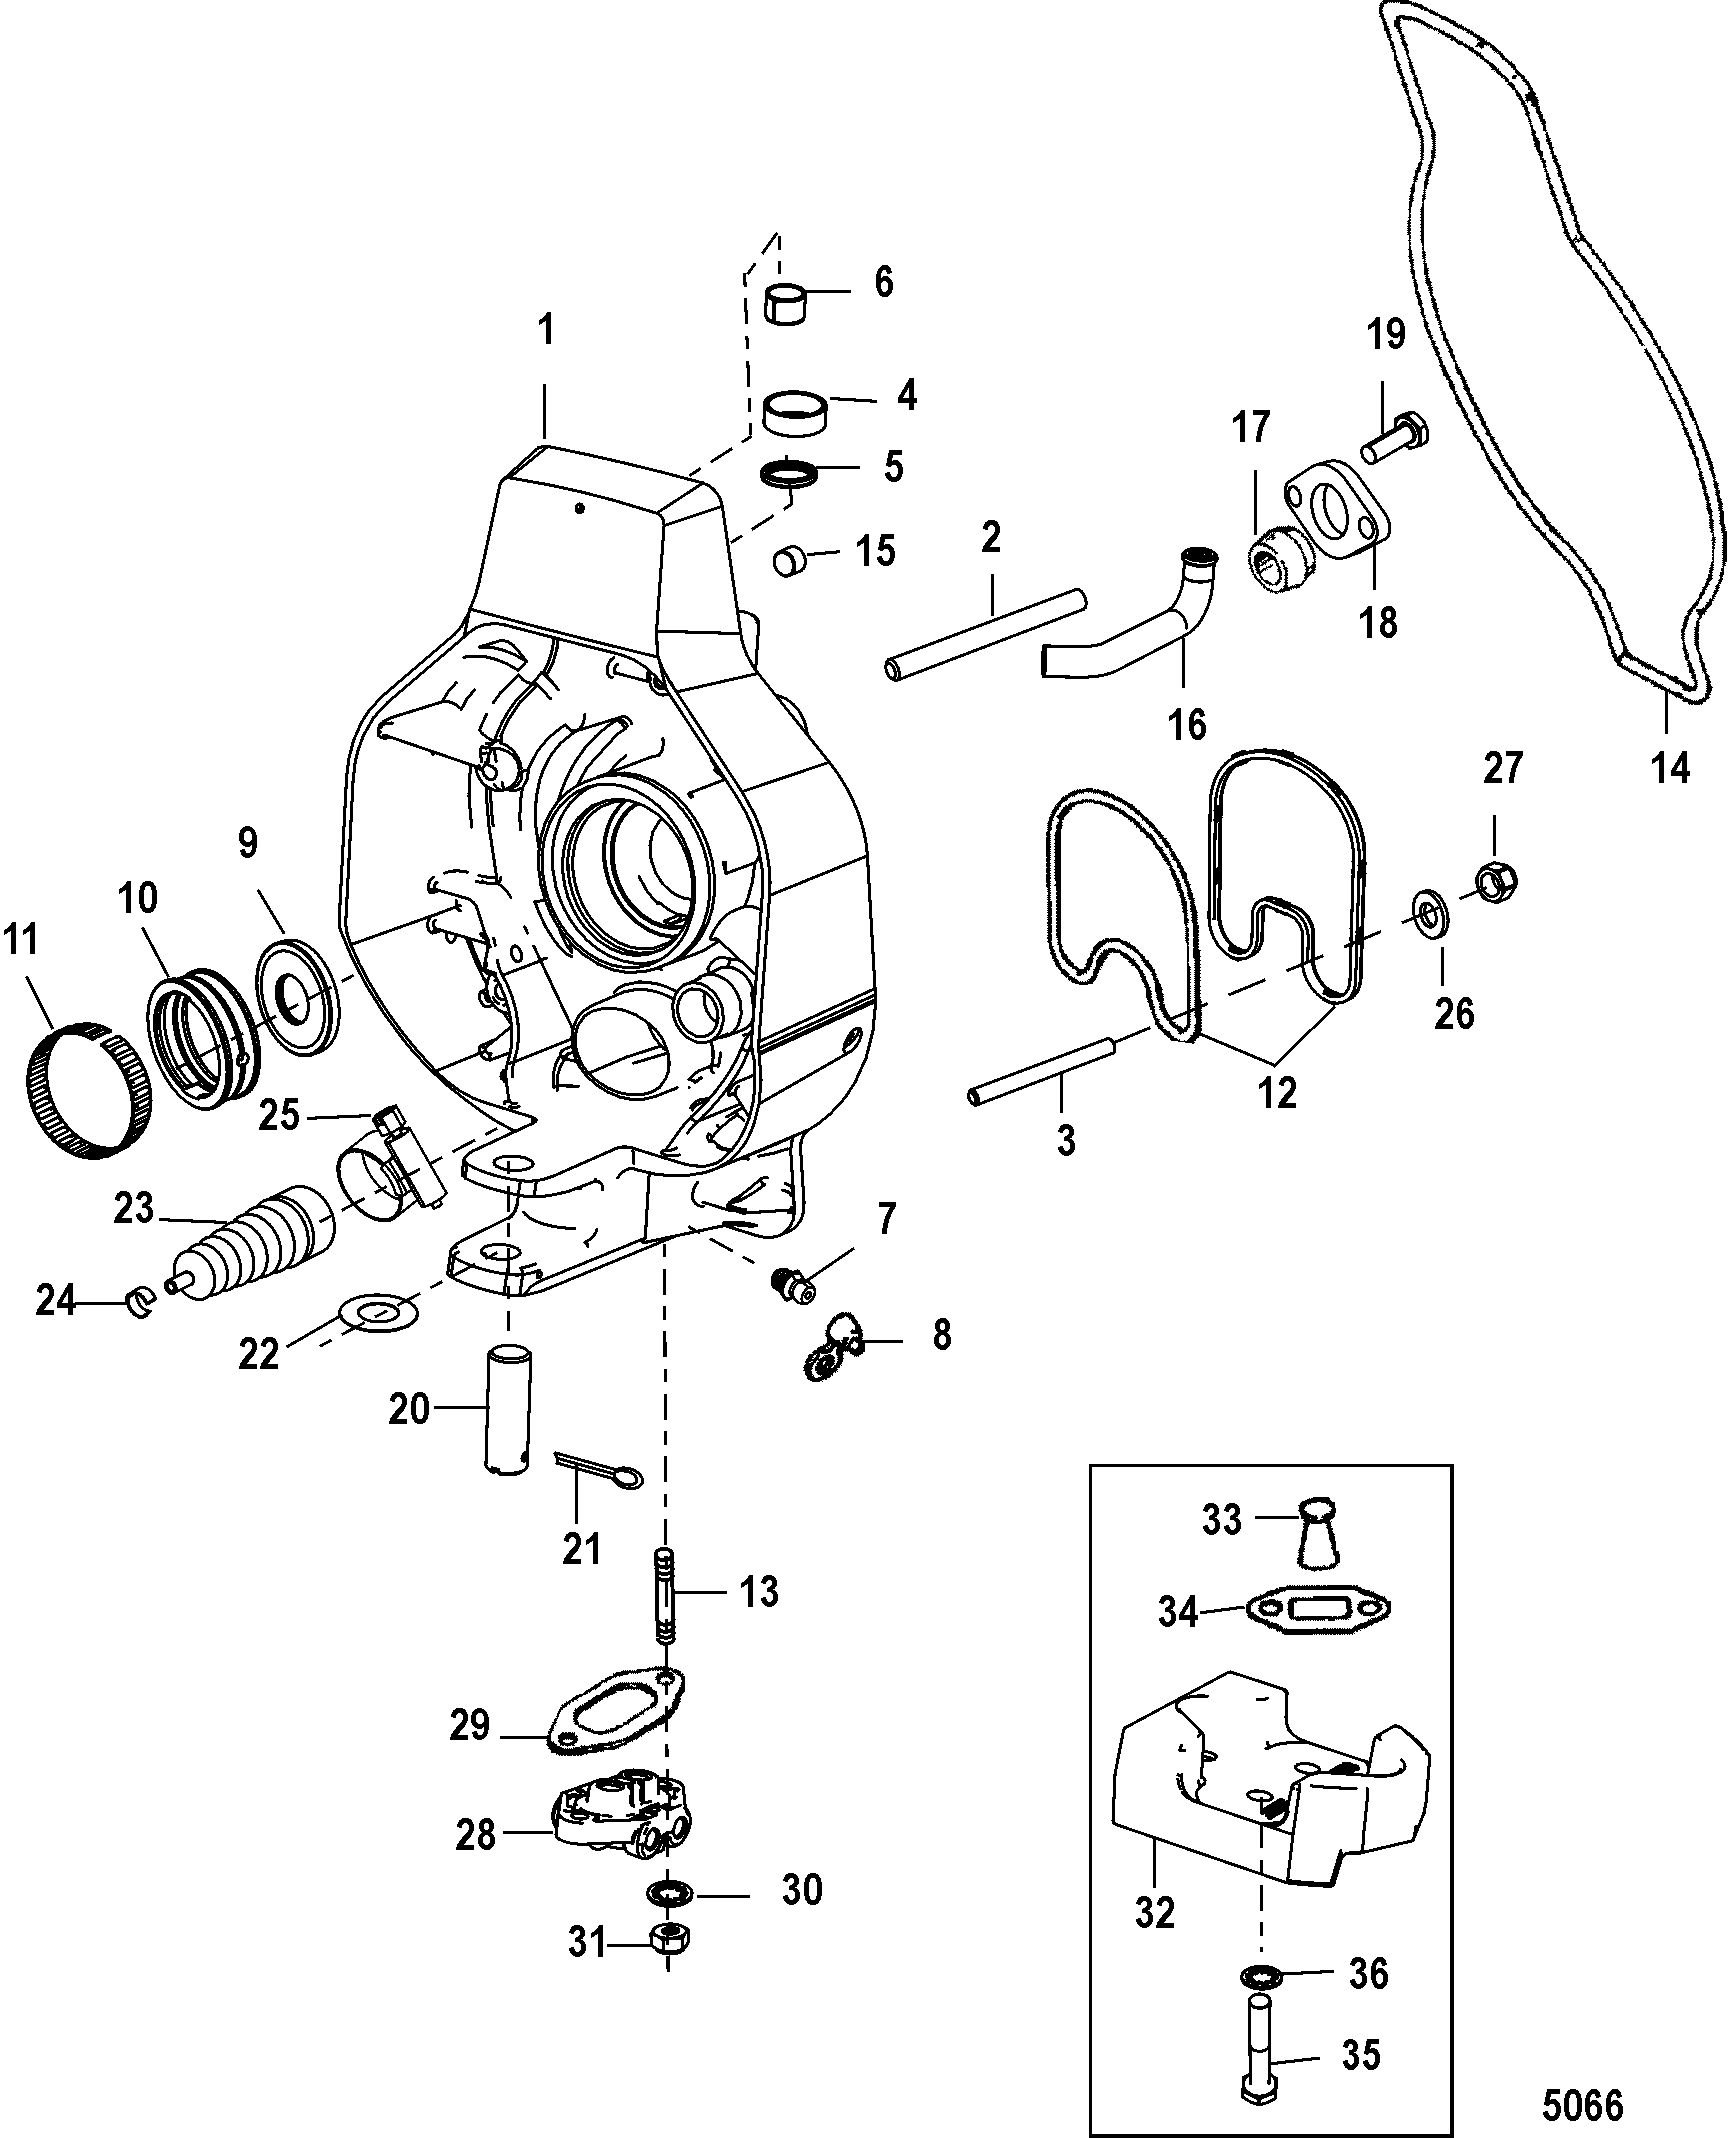 Evinrude Outboard Motor Parts Diagram together with 50 Hp Mercury Outboard Throttle Cable Diagram additionally Parts besides Suzuki Parts Schematic as well 30 Hp Yamaha Outboard Wiring Diagram. on evinrude wiring diagram